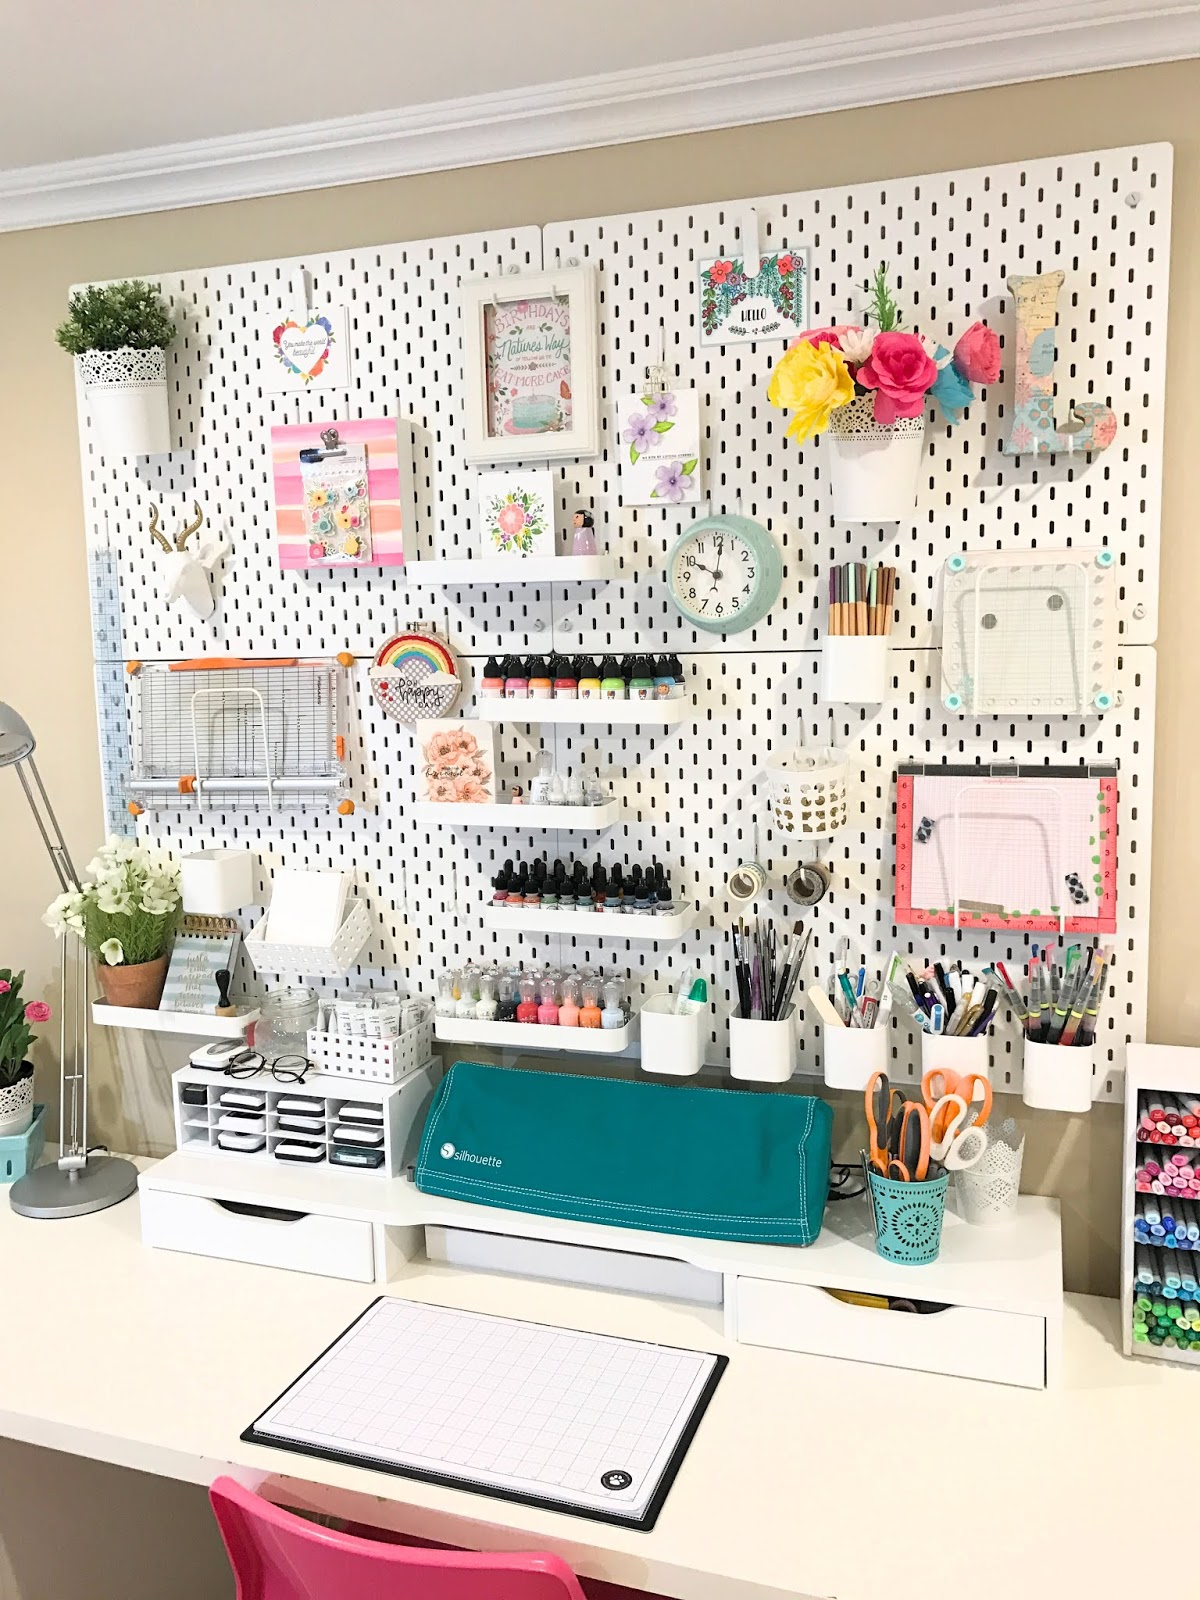 Craft Room Organization Makeover Ikea Skadis Pegboard Stitches In Paper